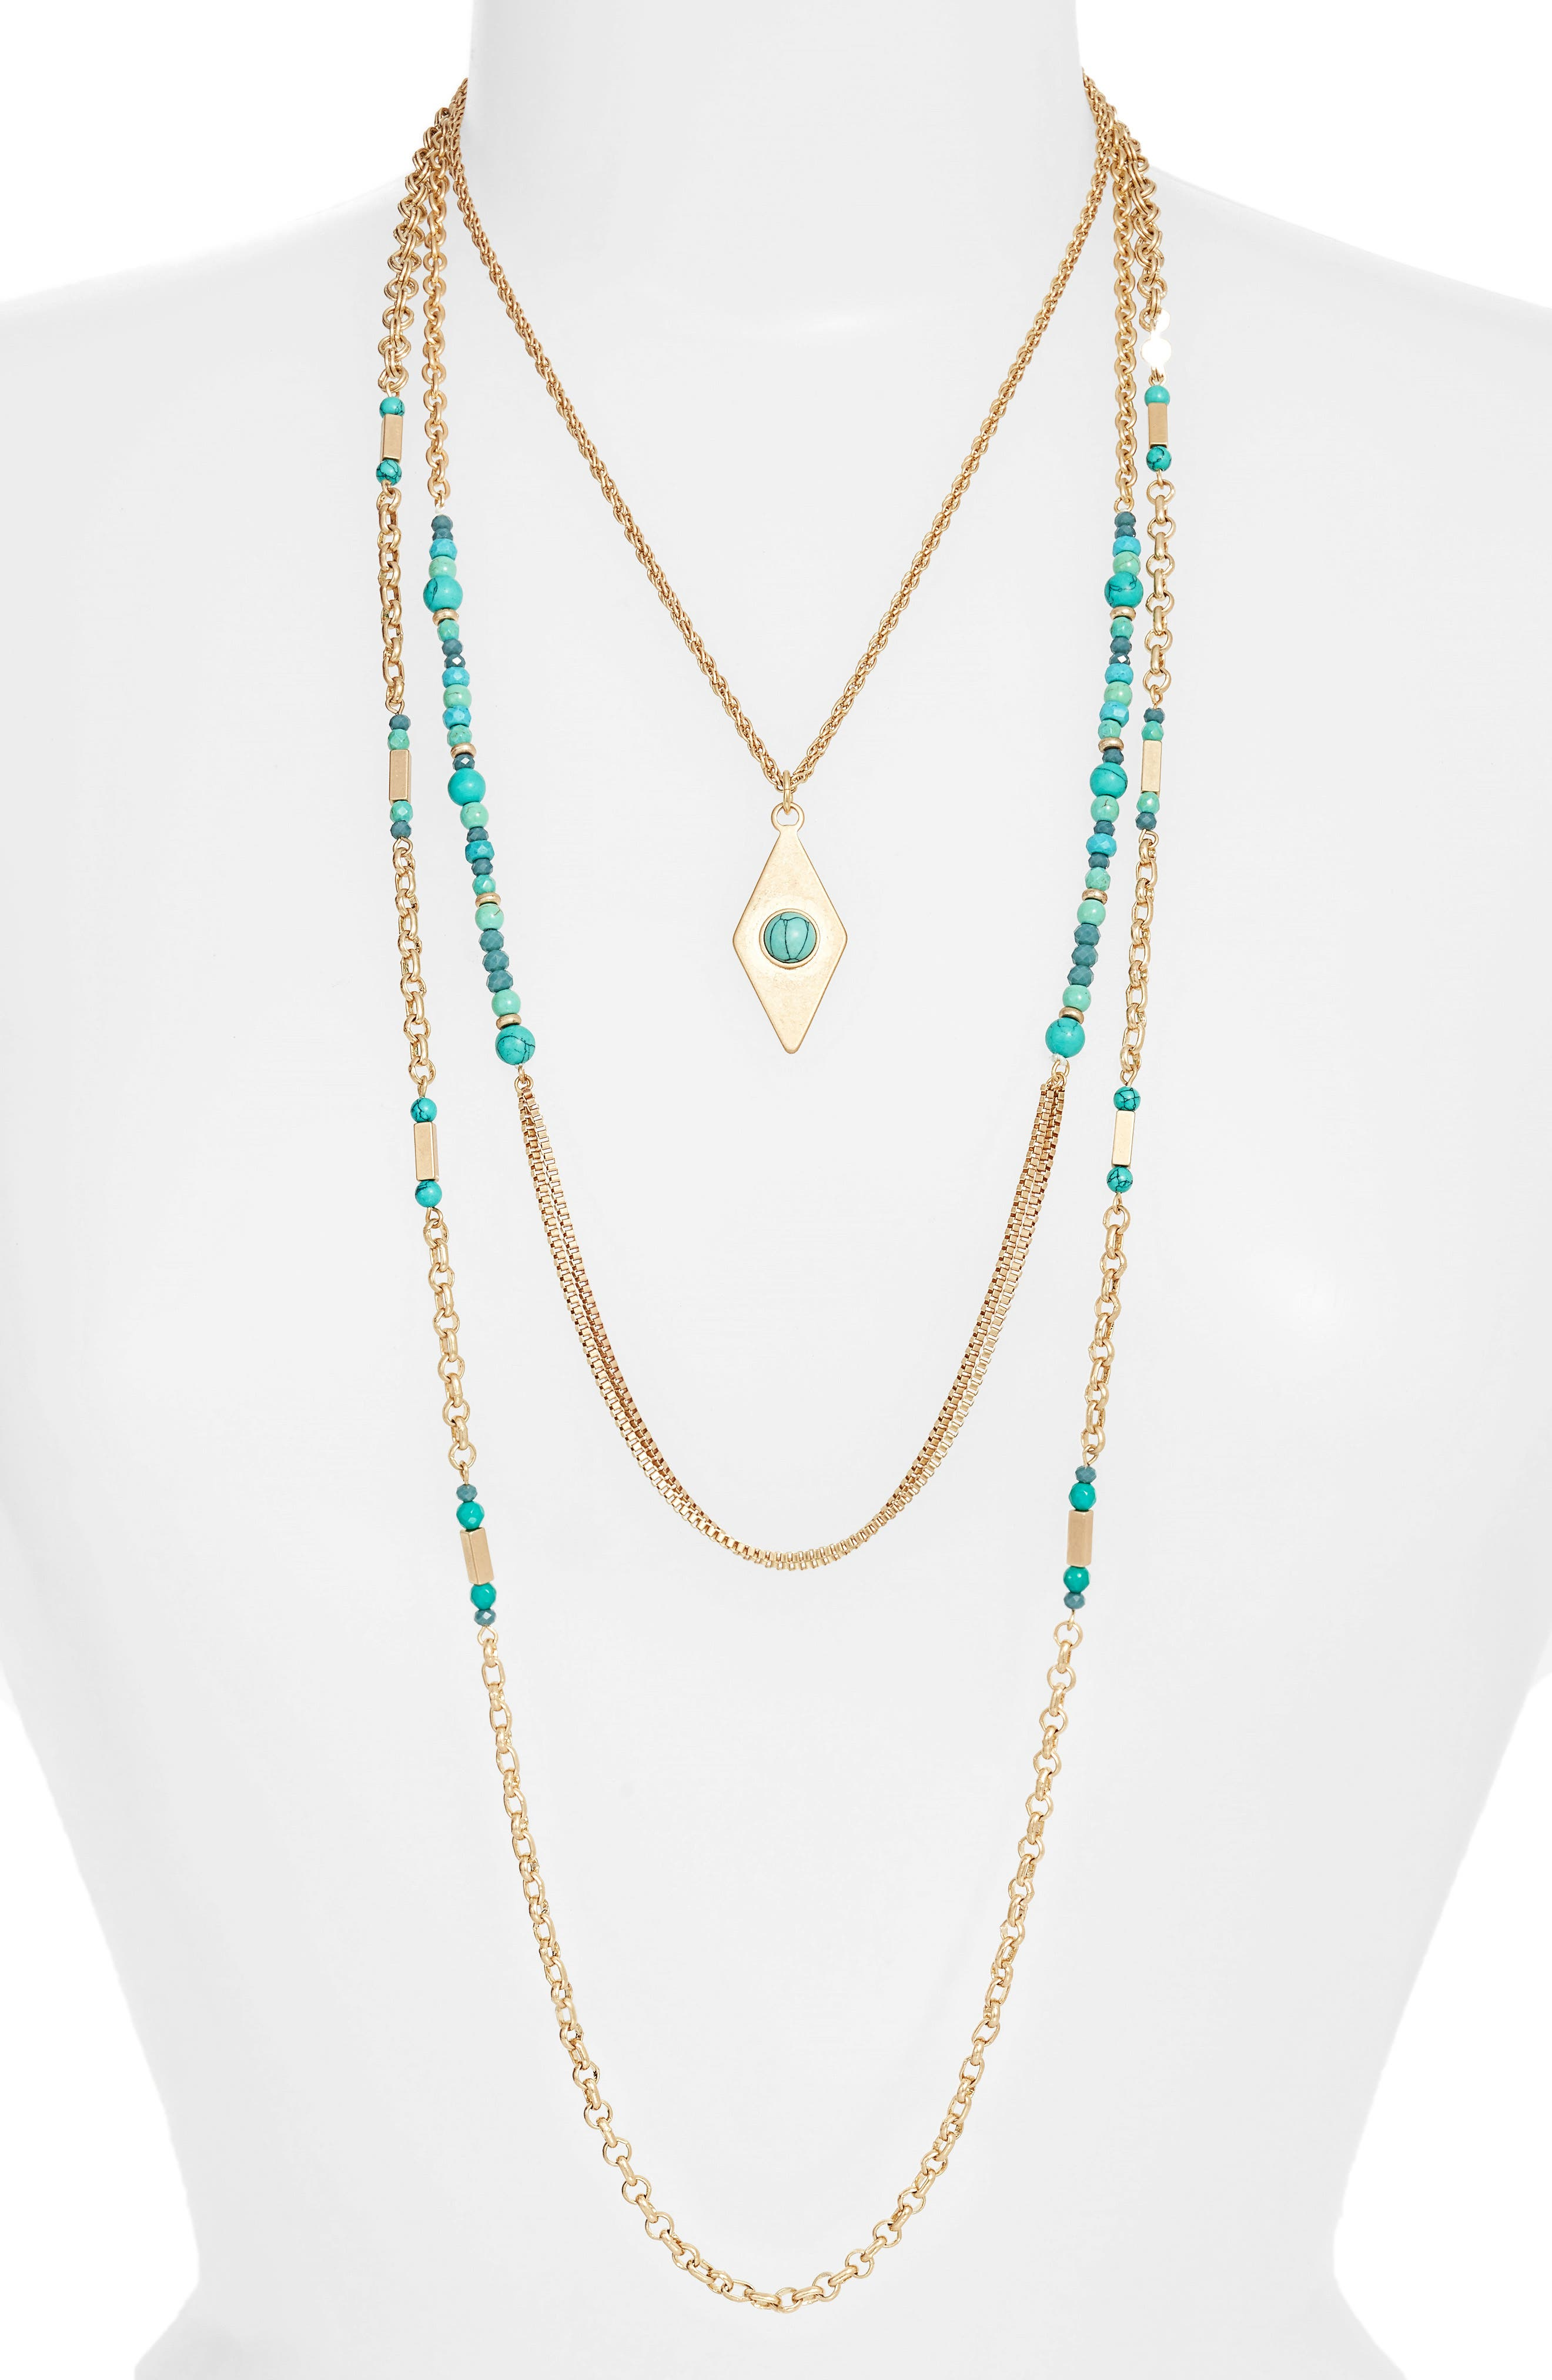 Multistrand Necklace,                             Main thumbnail 1, color,                             Turquoise- Gold